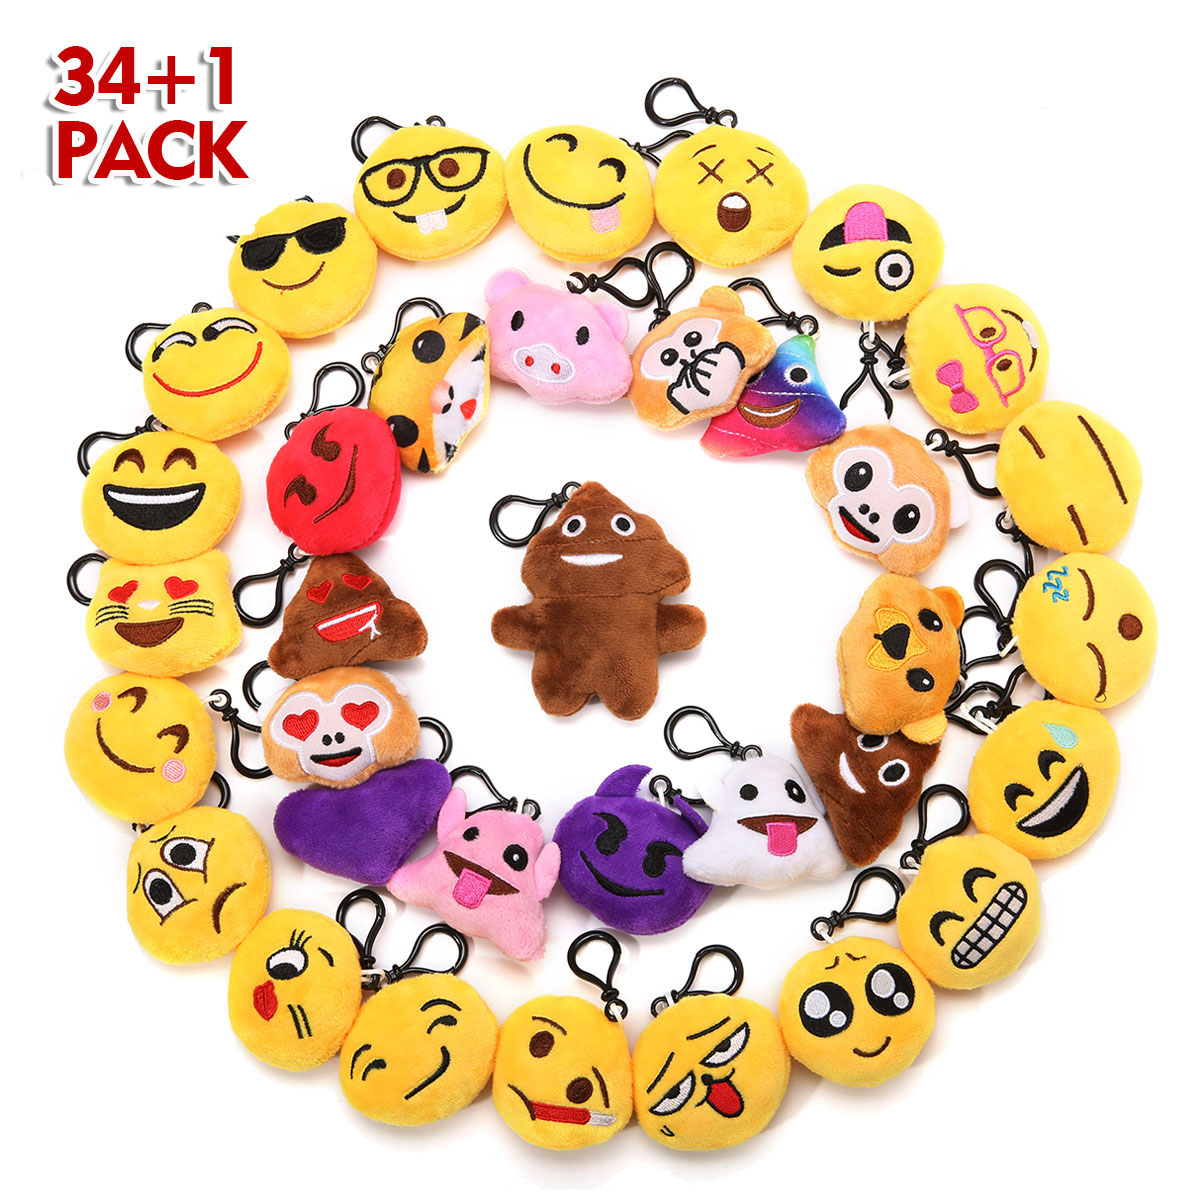 34Pack Emoji Keychain, Emoji Party Favors Mini and Cute Plush Pillows, Emoji Party Supplies for Kids Christmas, Birthday, Classroom Rewards,9cmx6.4cm